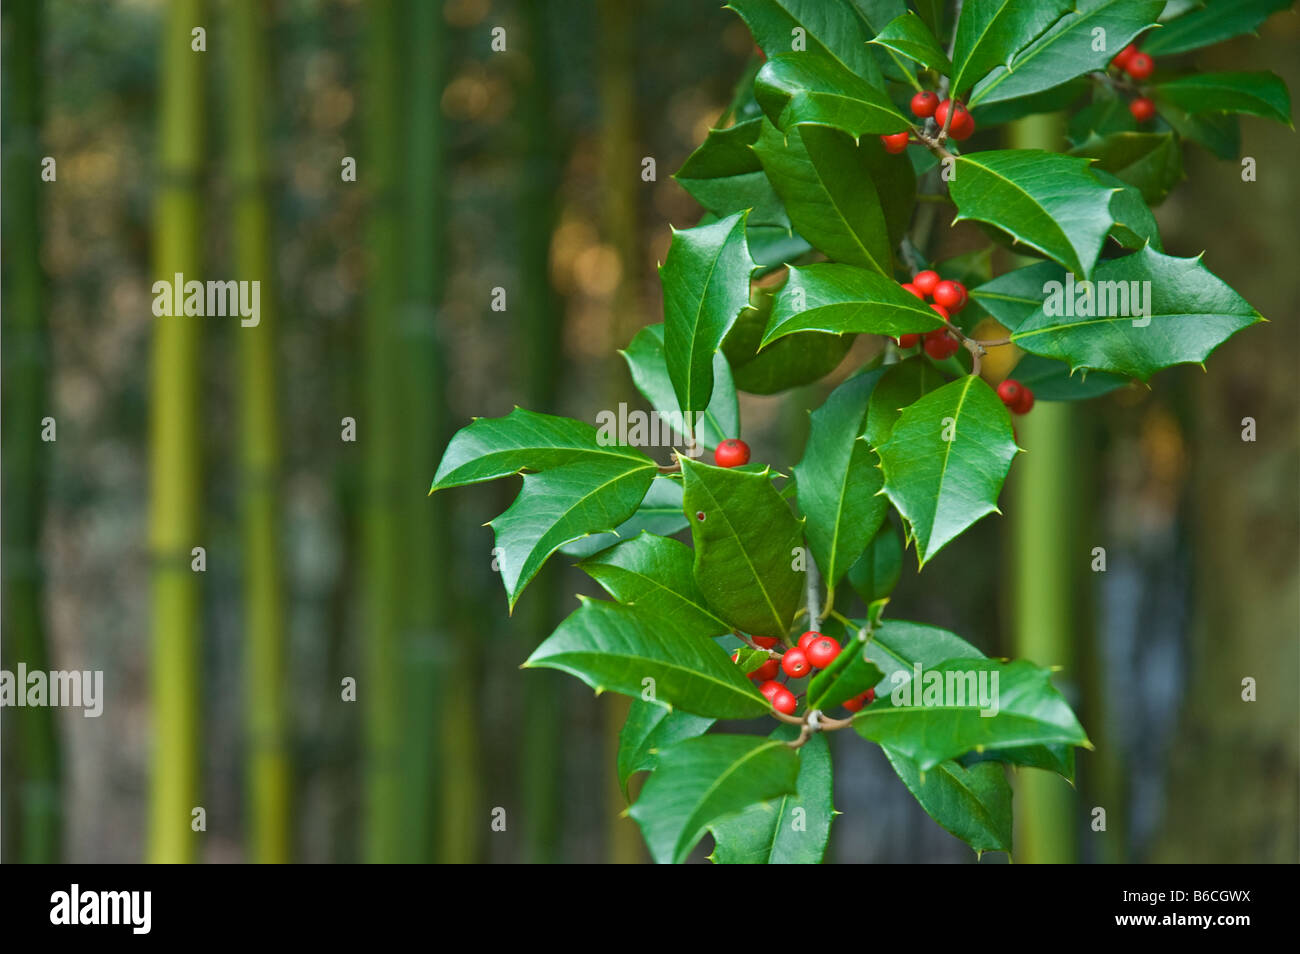 Close Up Christmas Green Holly Leaves And Red Berries Close